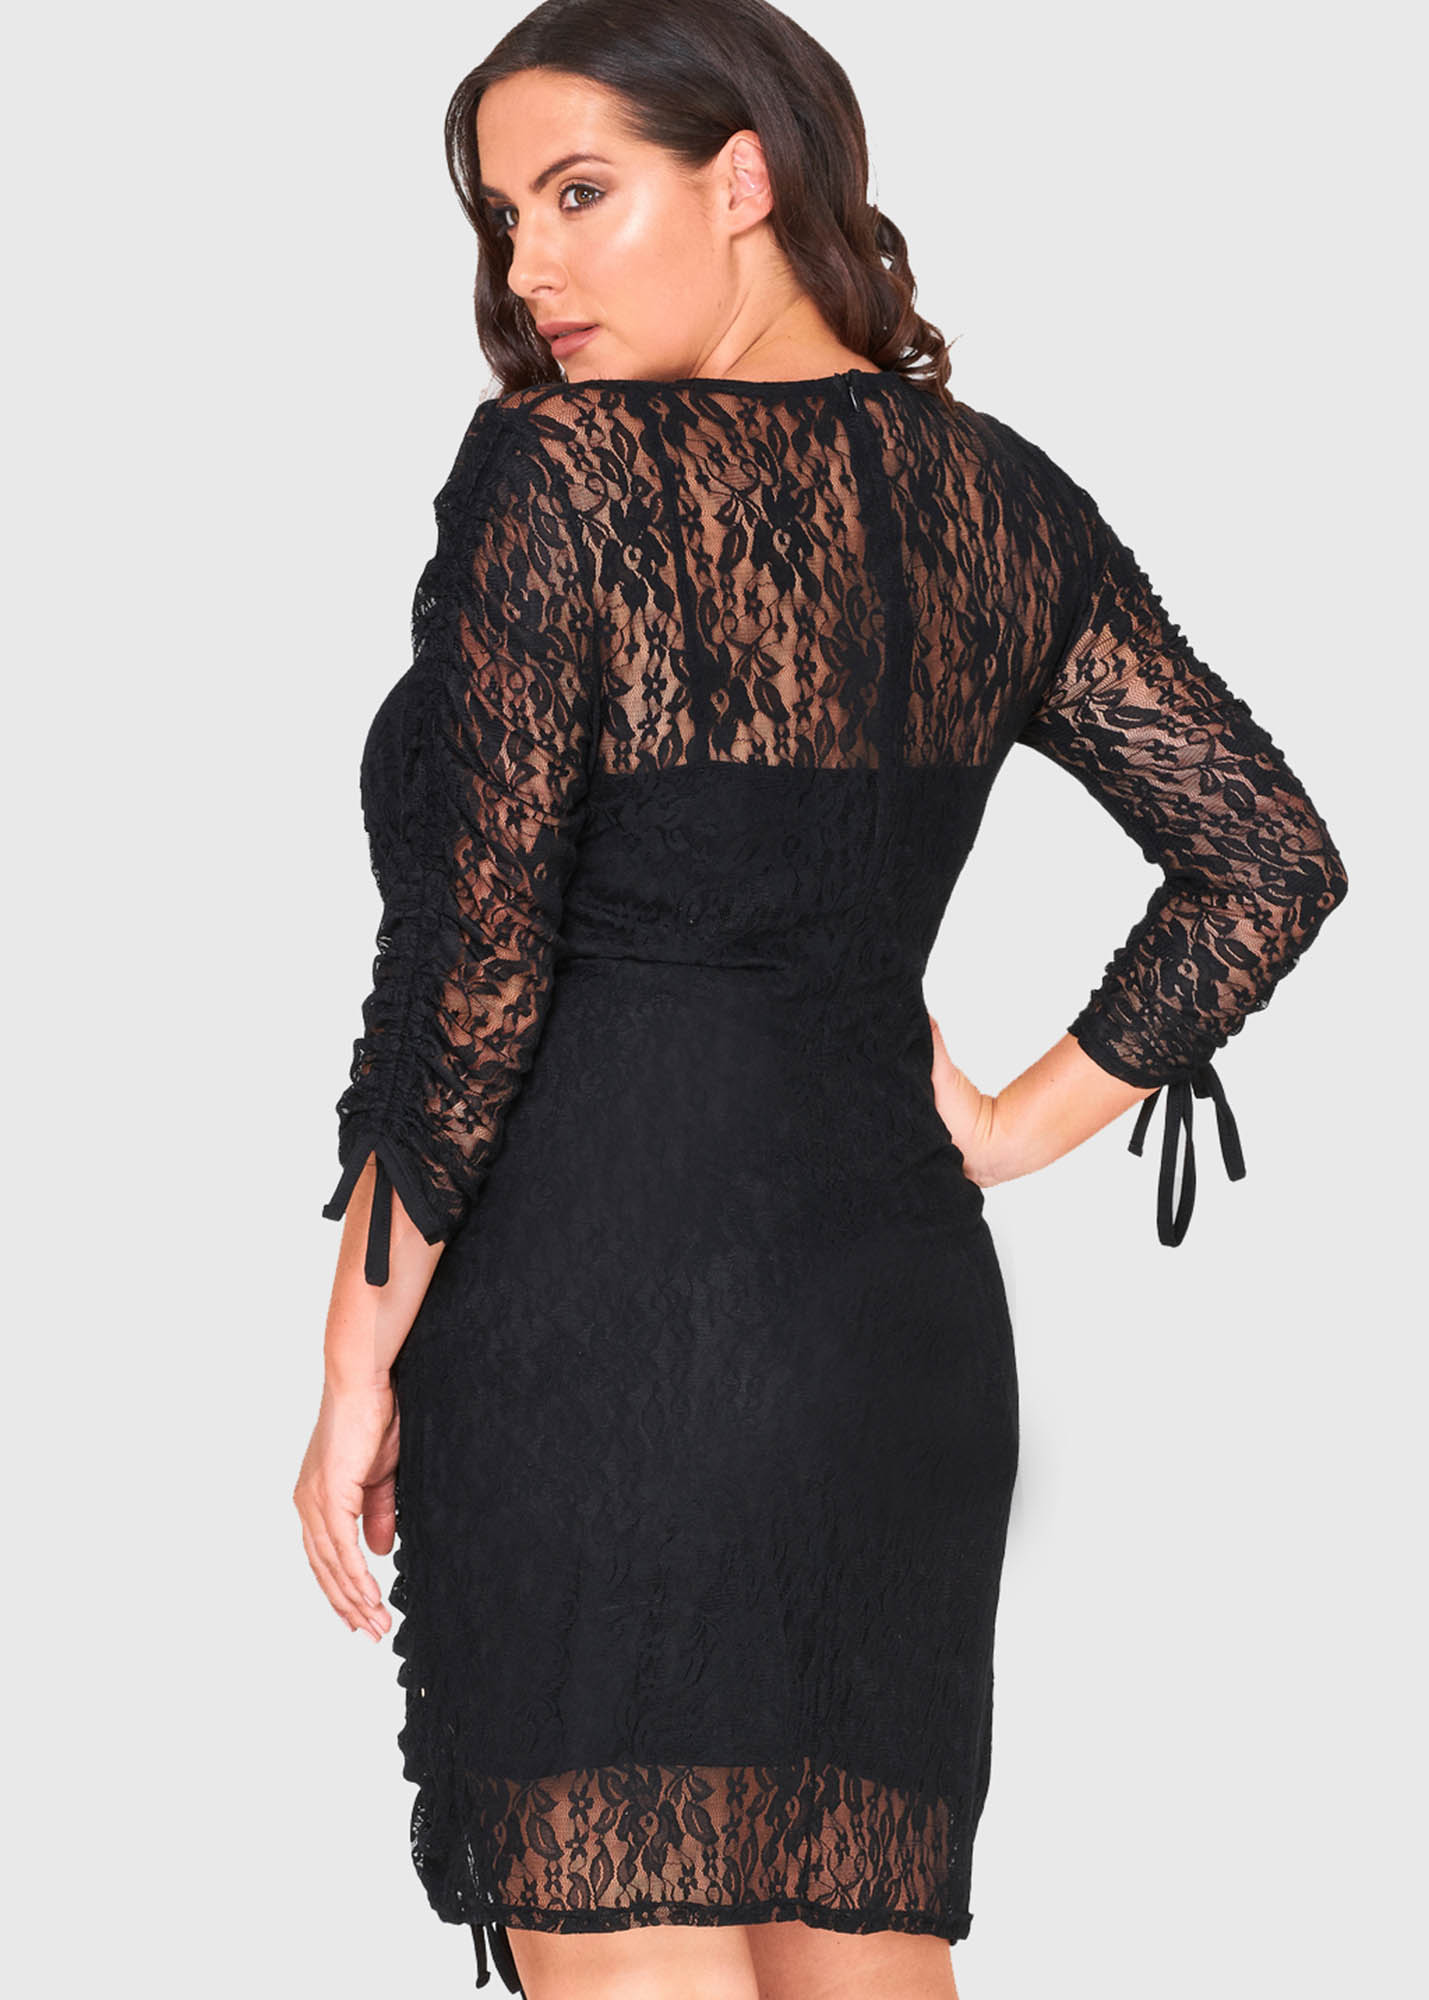 Photo №1 Edvige Plus Size dress